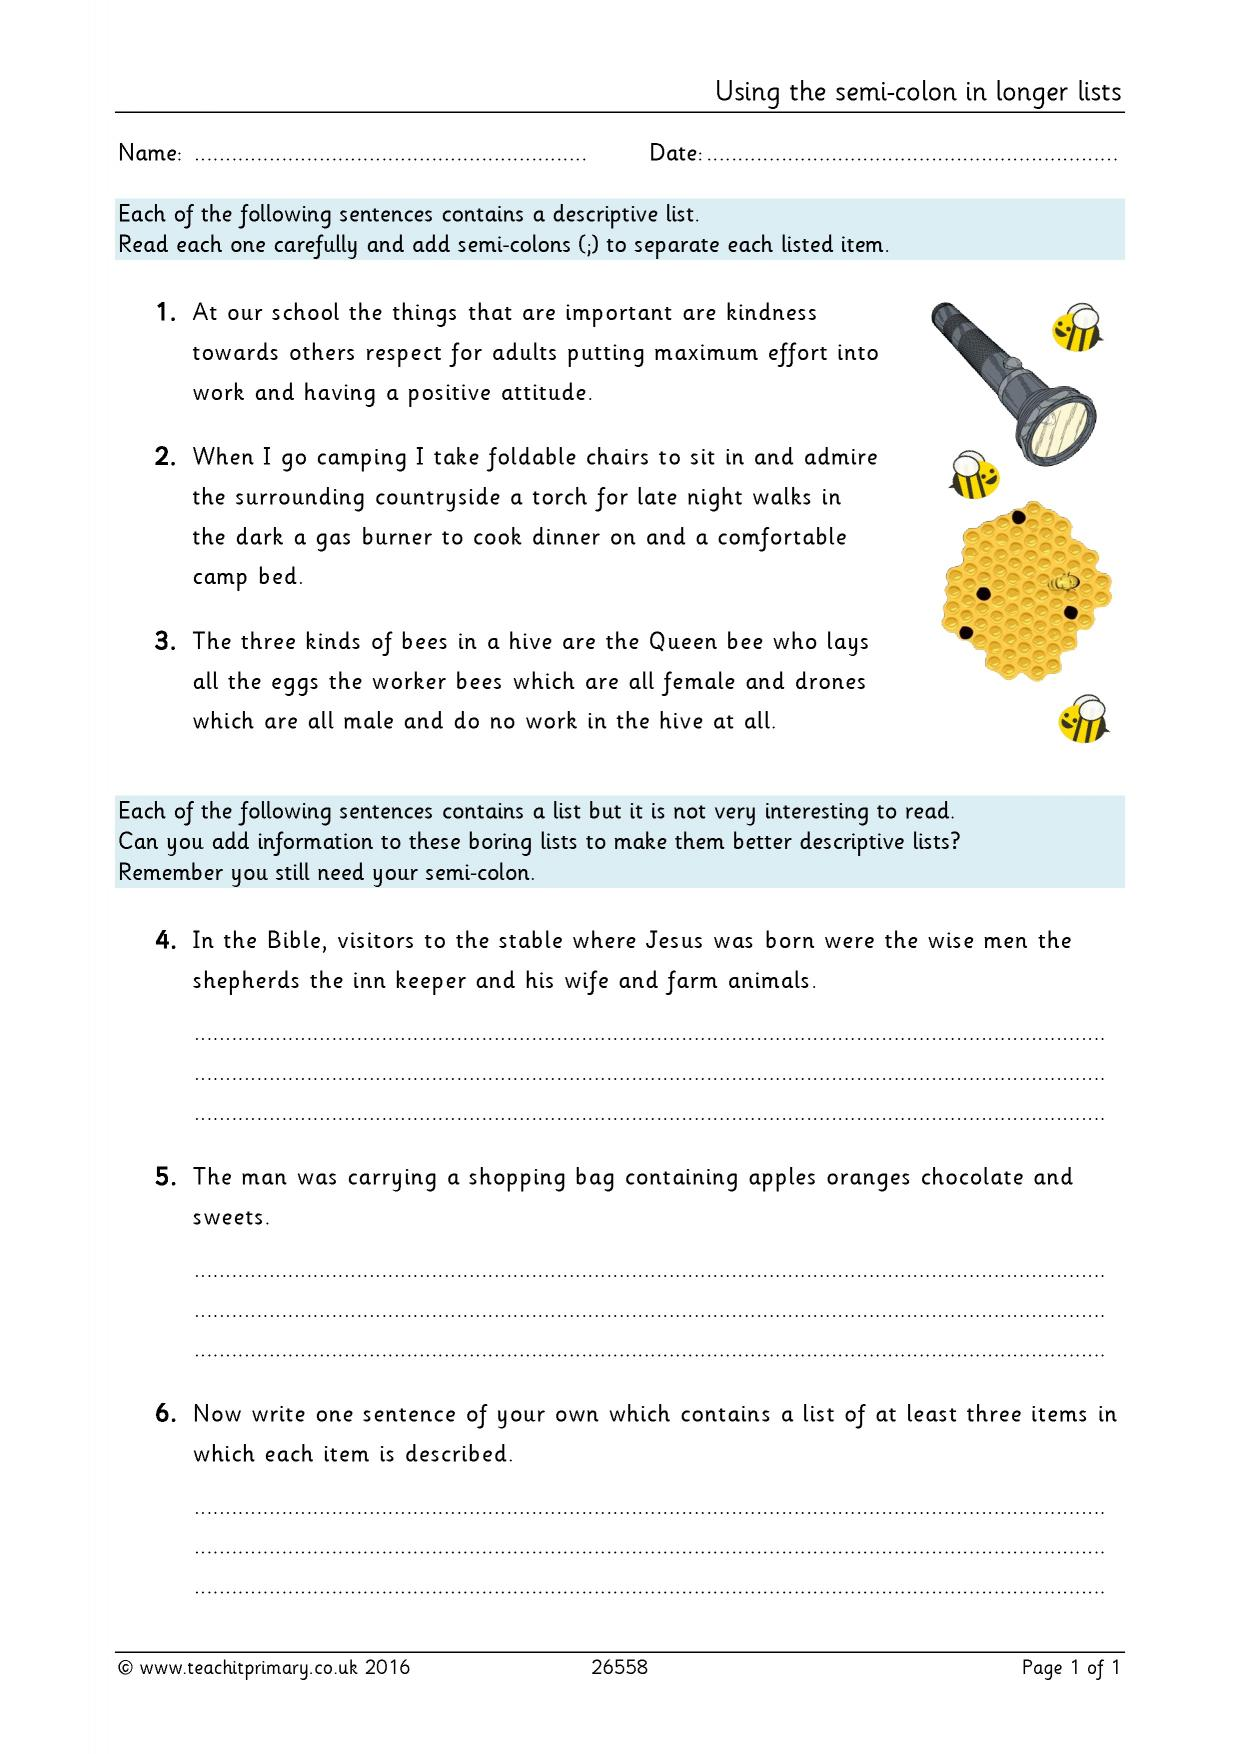 Worksheets Semicolon Worksheet semicolon worksheets using the semi colon in longer lists lists